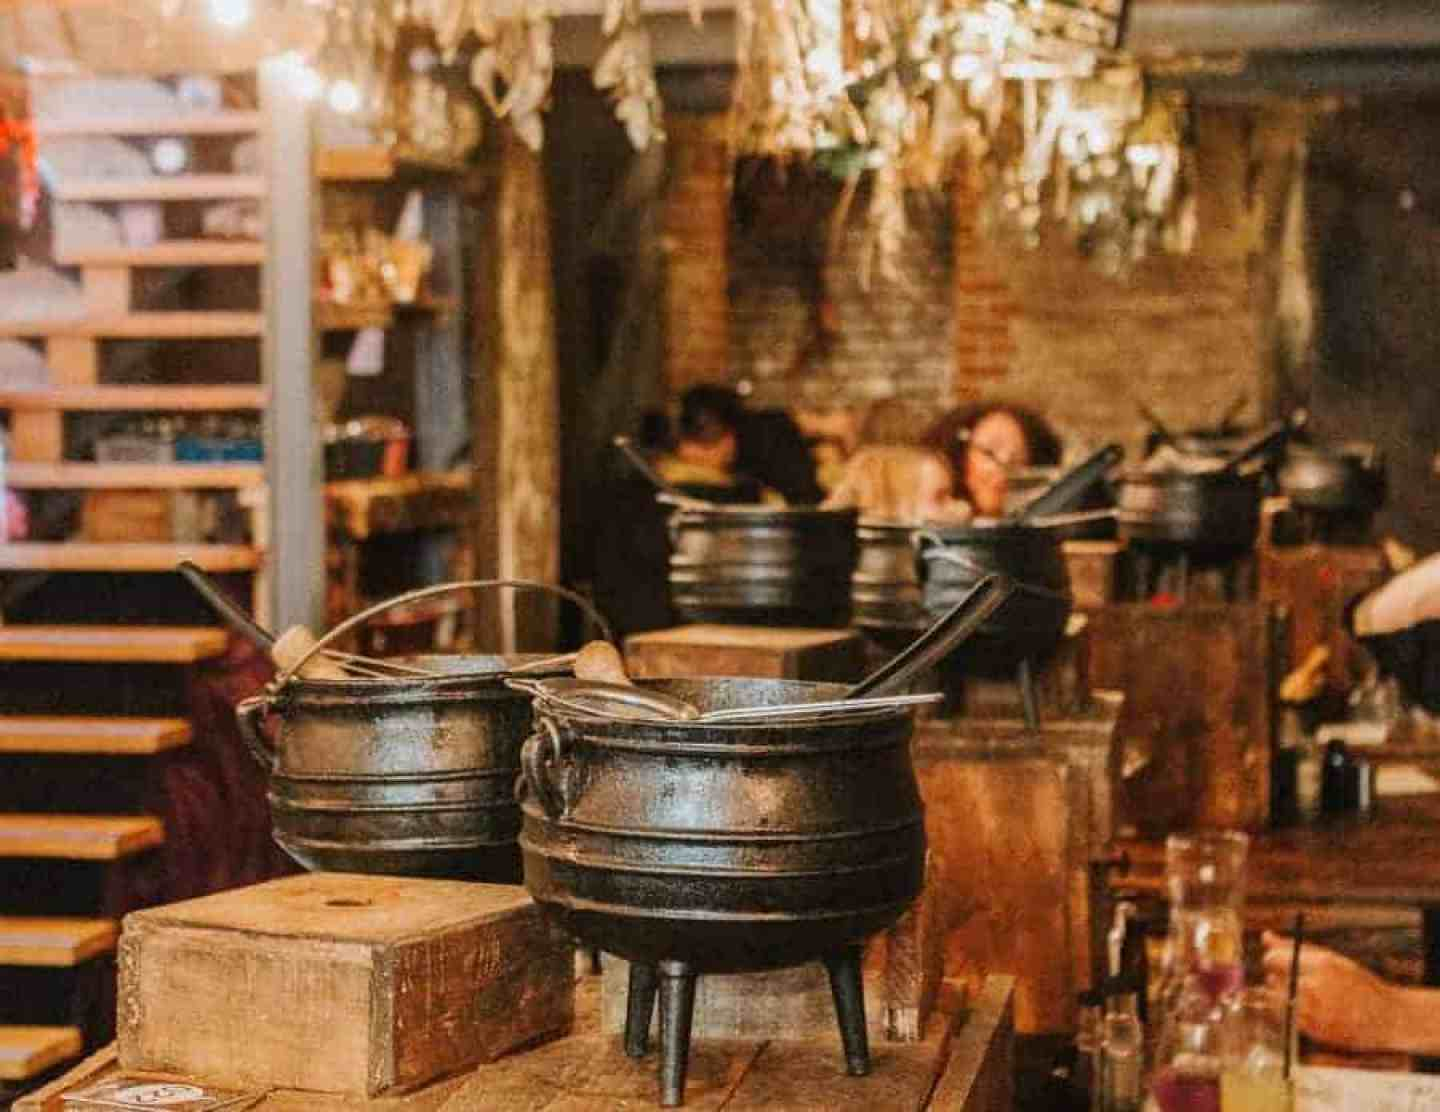 The Cauldron Magical Cocktail Experience Review: Perfect for Potter Fans